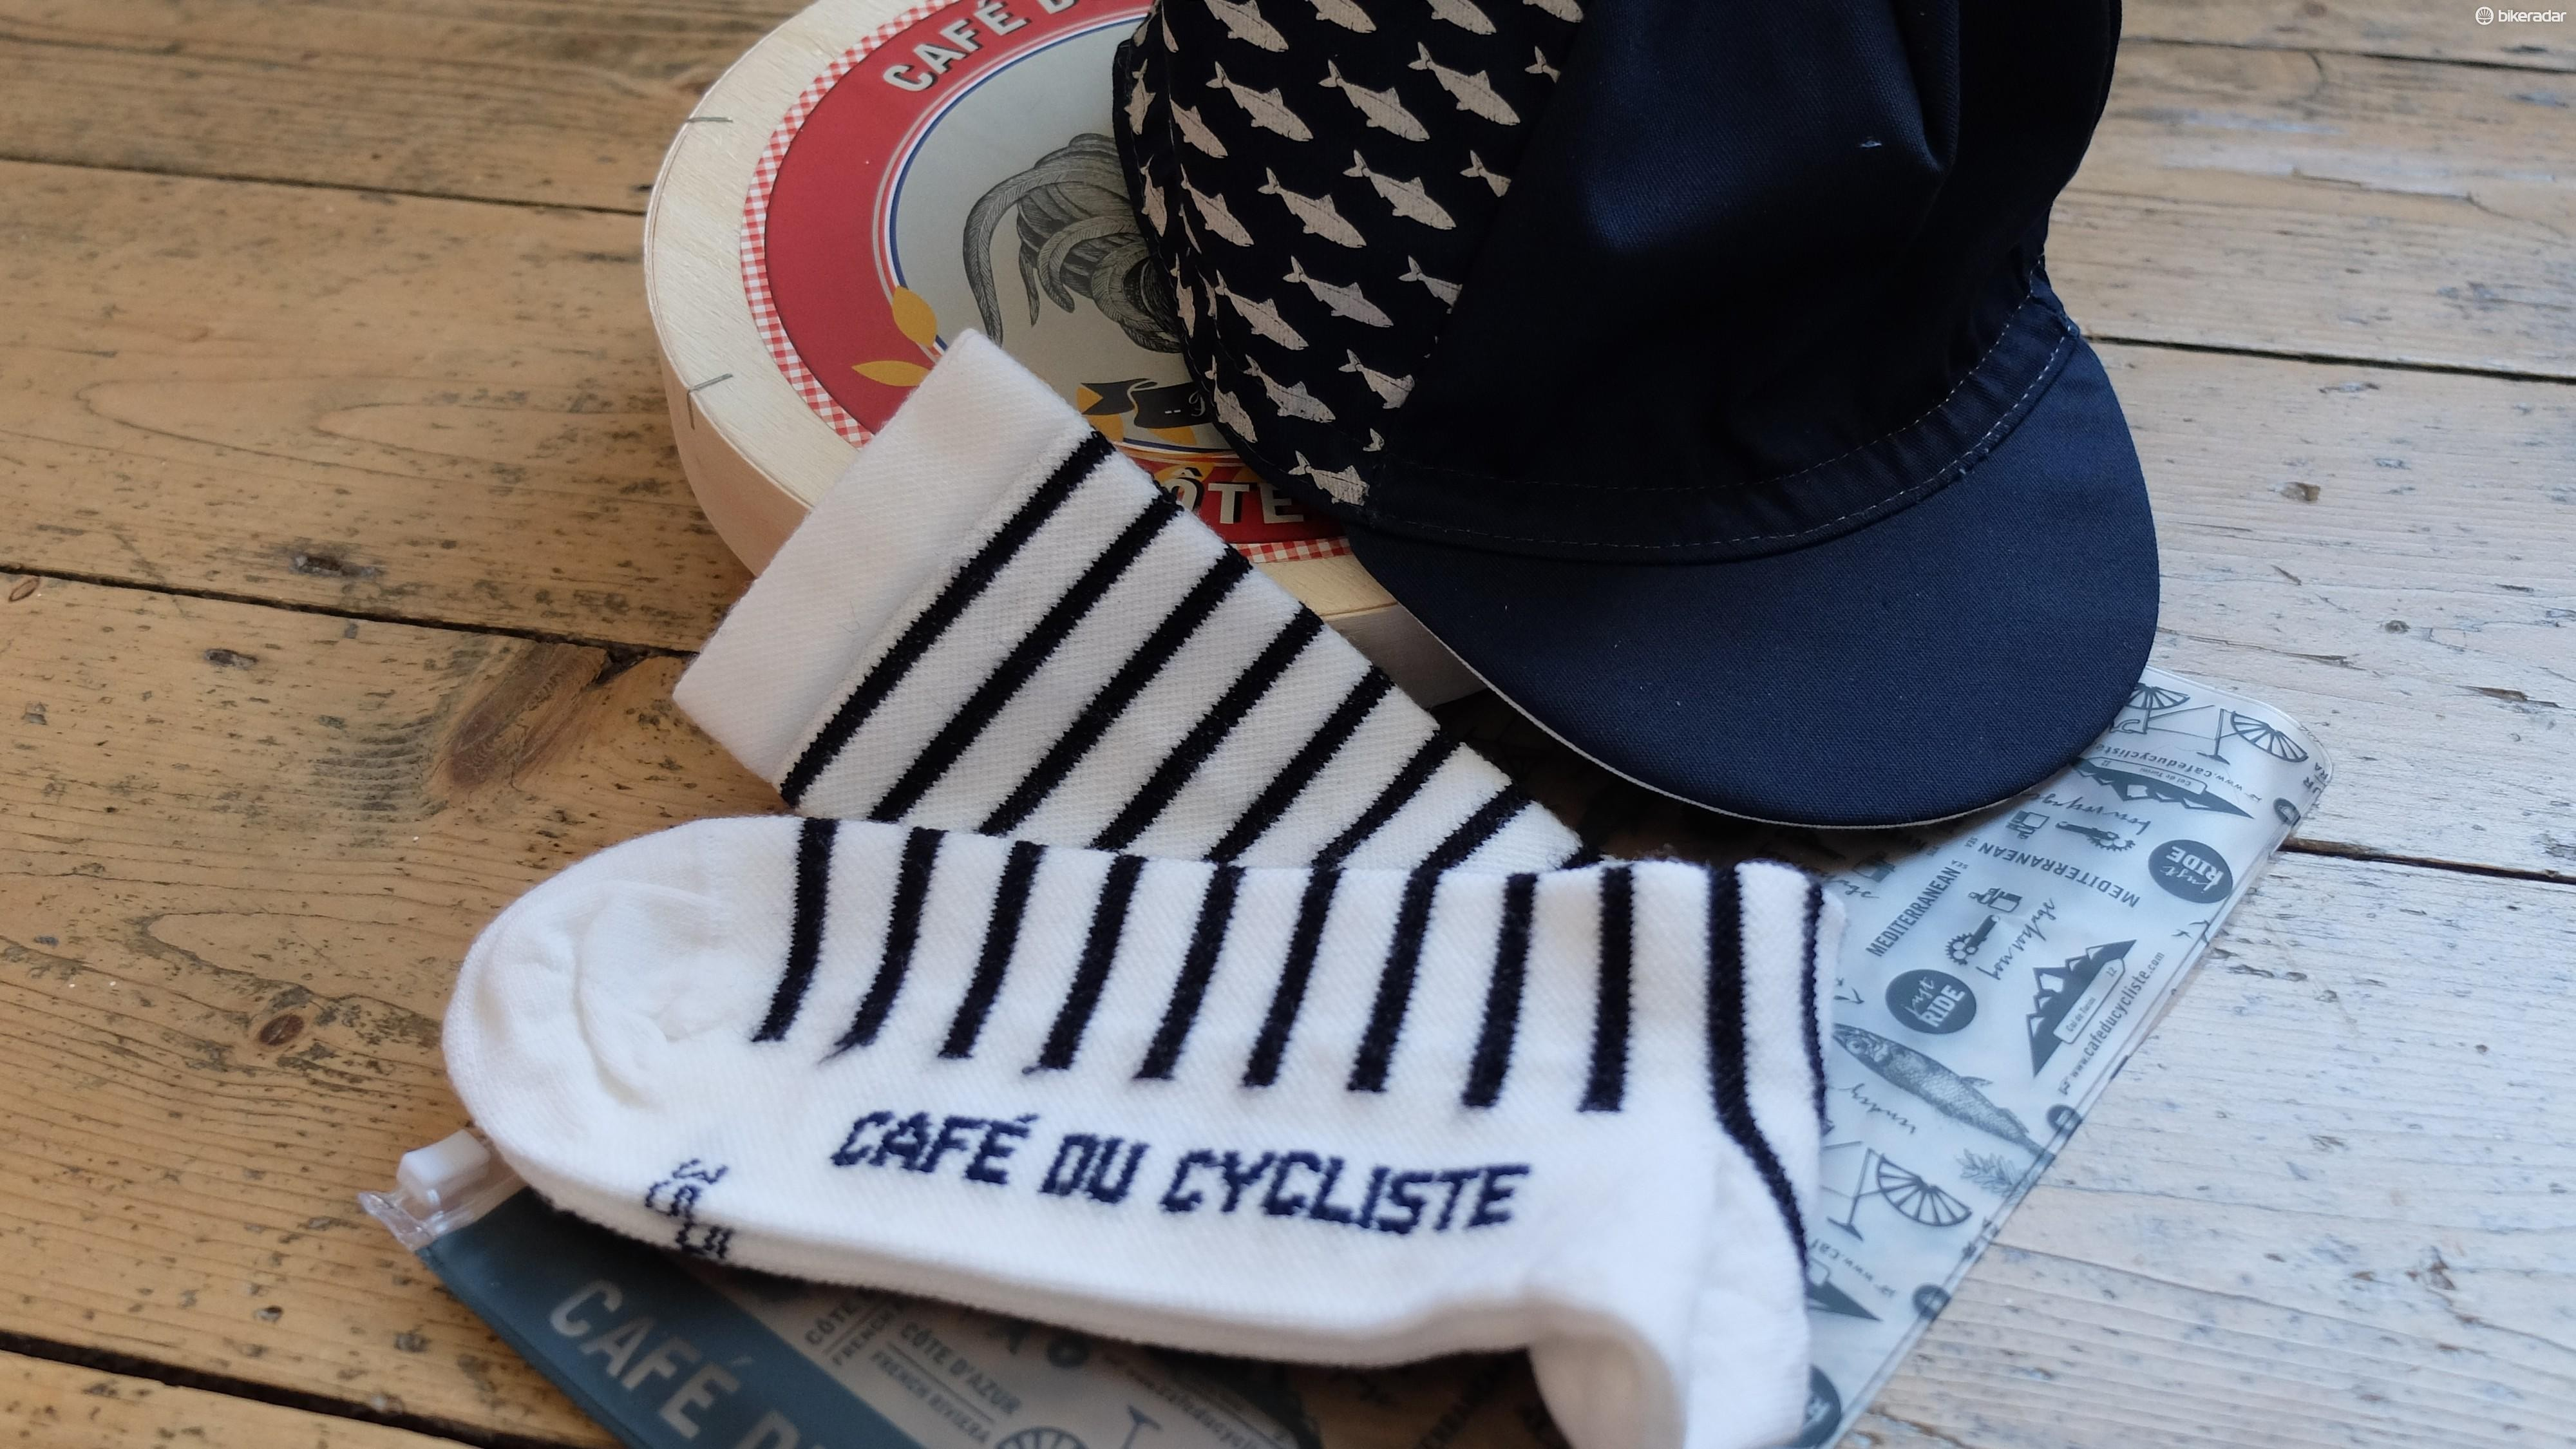 Complete the Frech chic with a pair of striped socks and a cap emblazoned with sardines